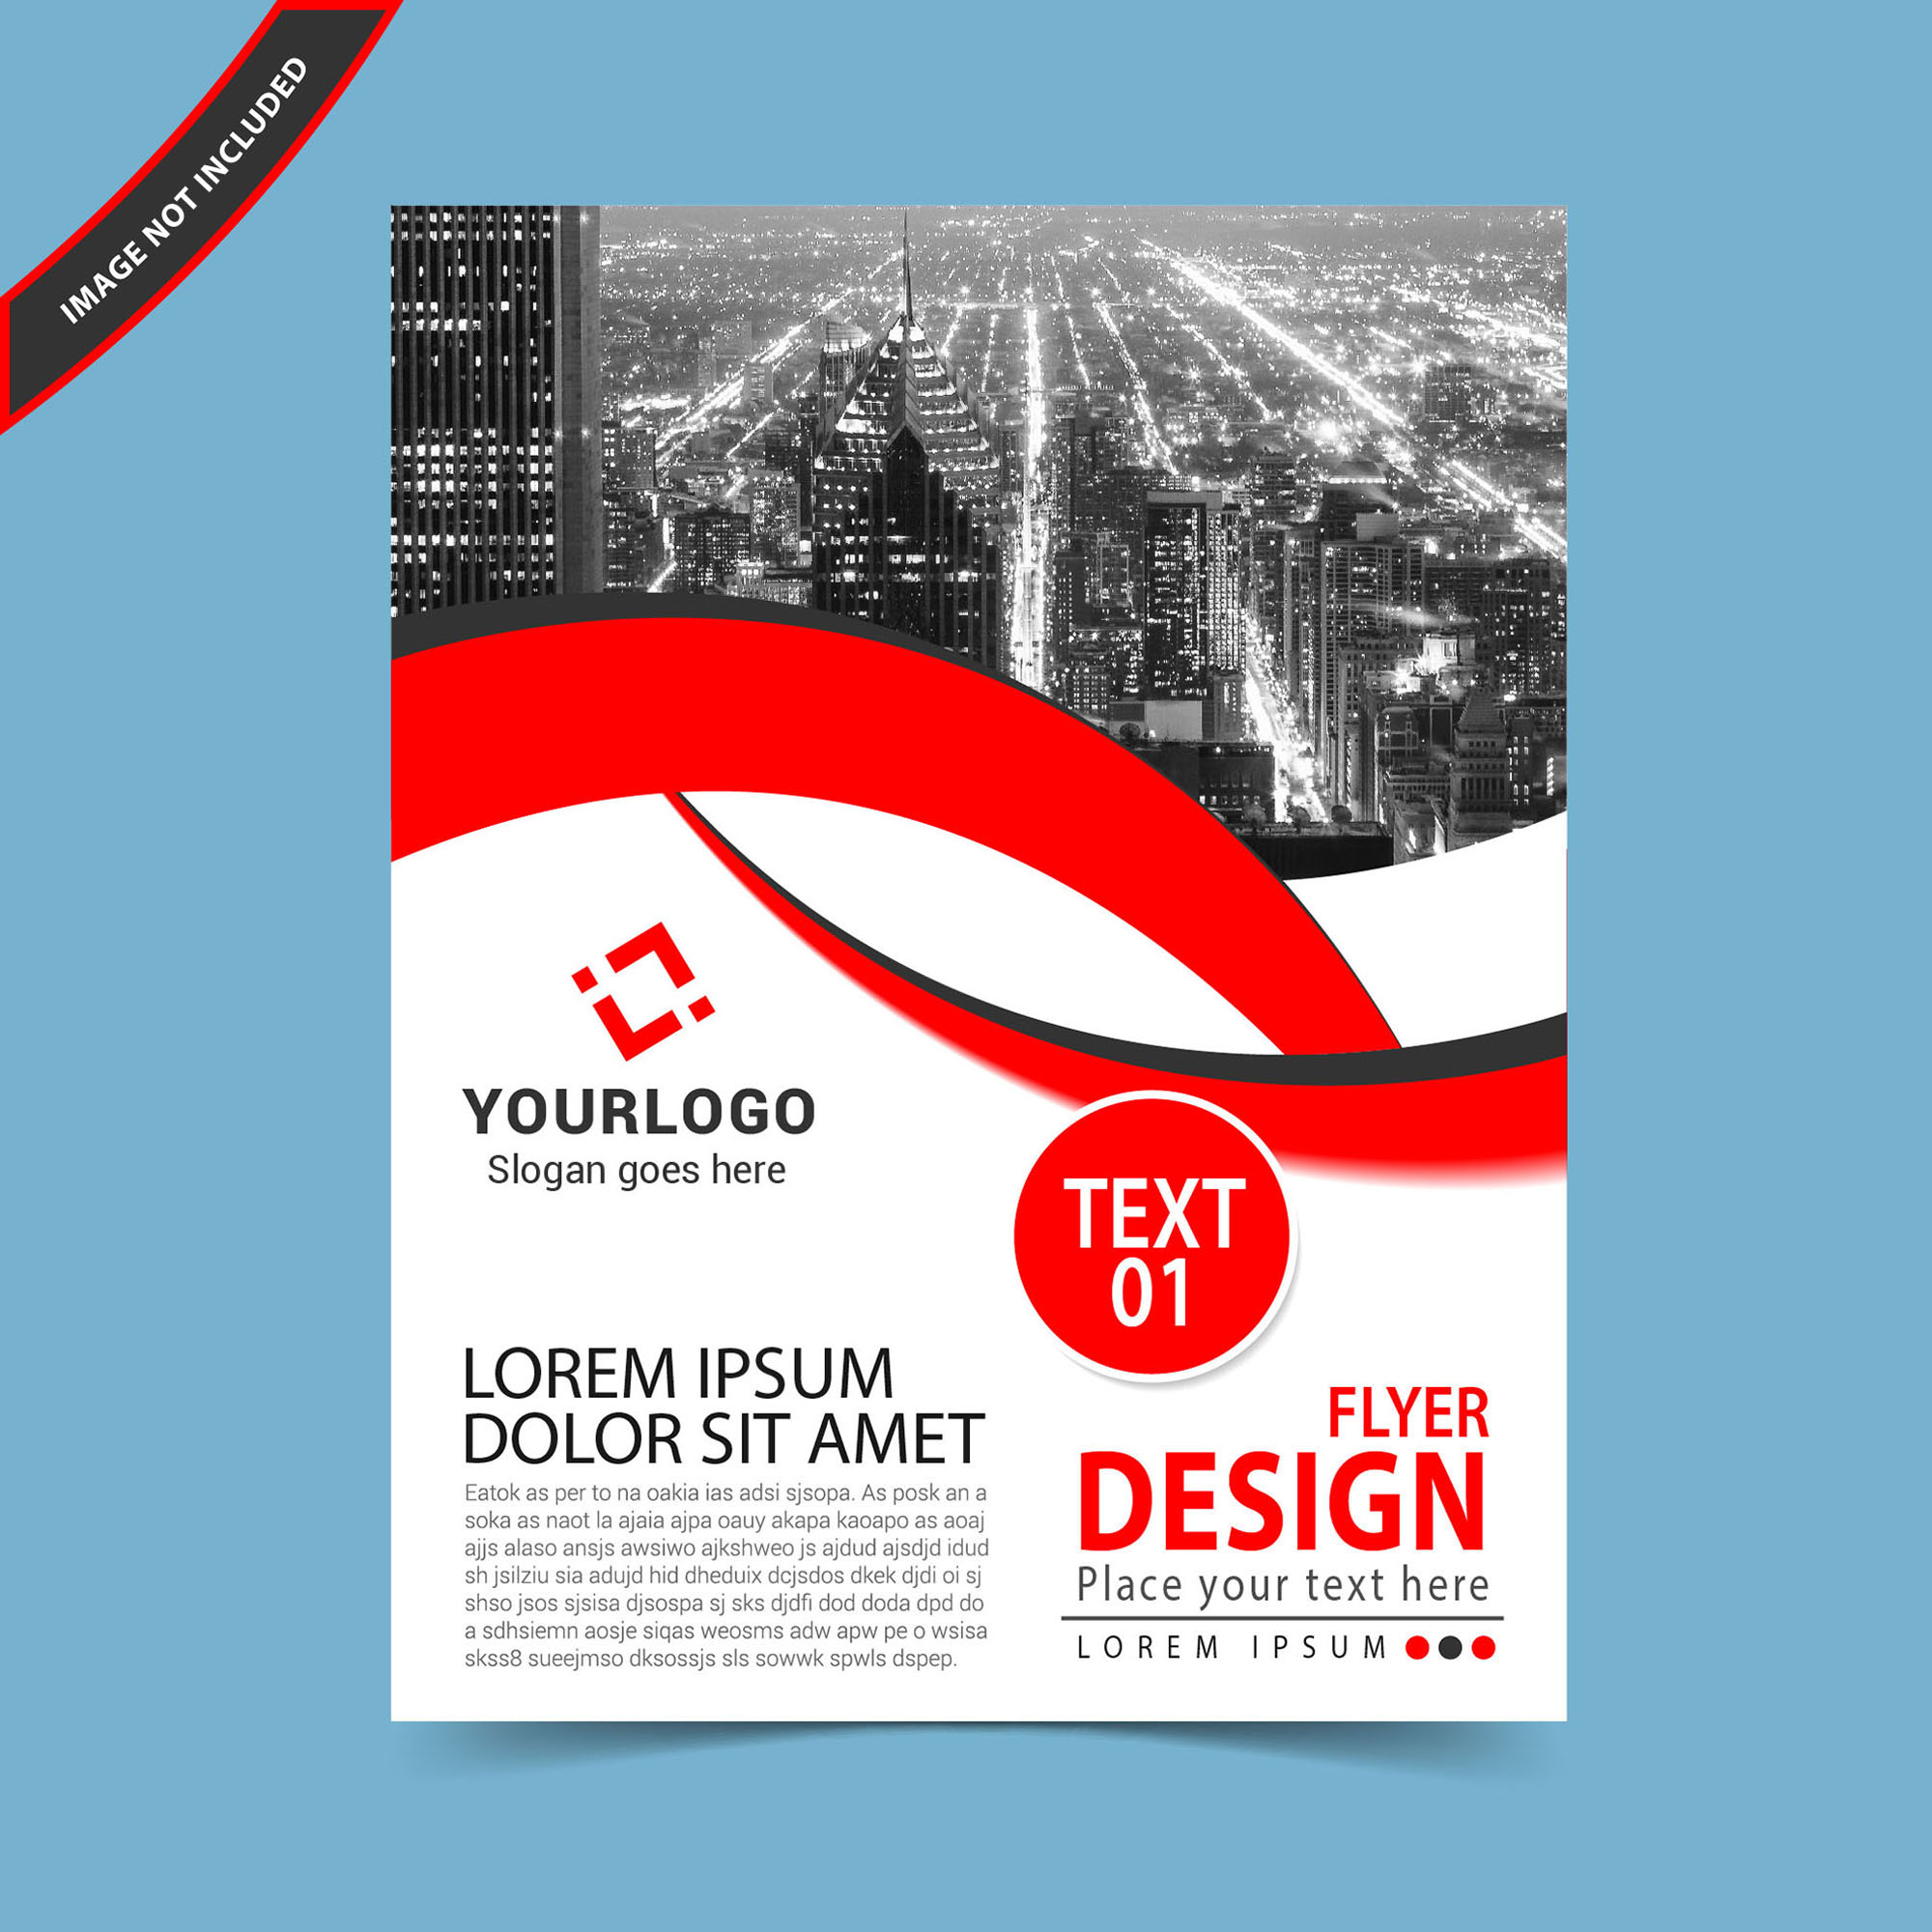 flyer design template vector free download wisxi com